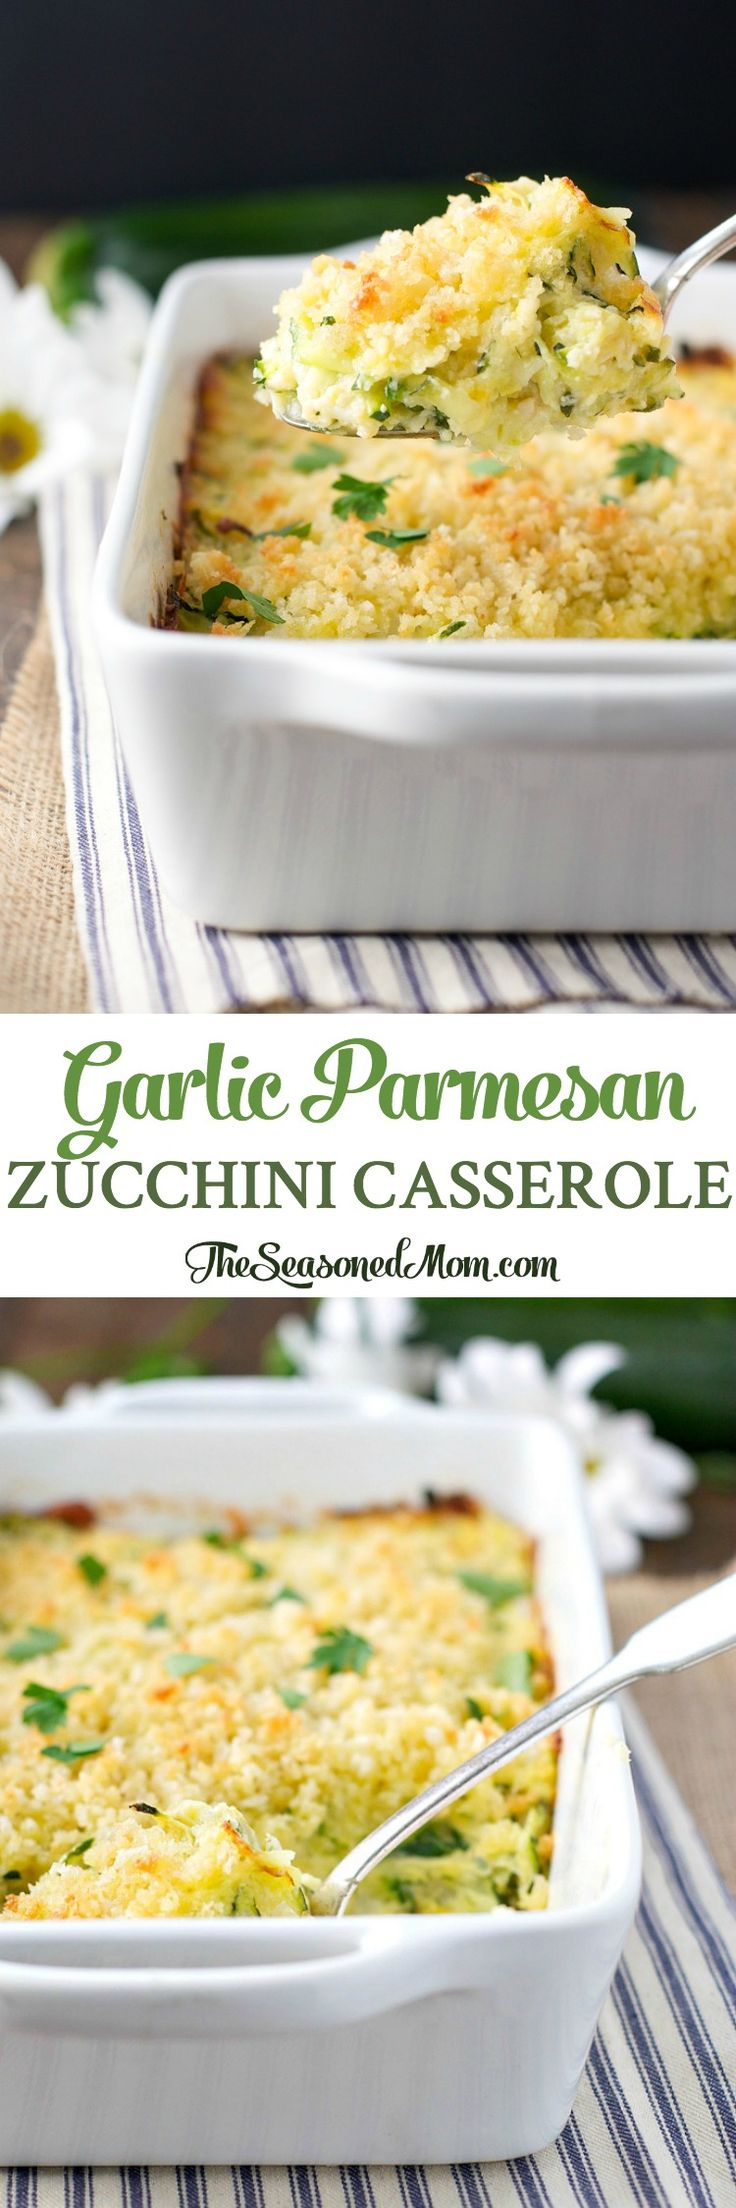 Garlic Parmesan Zucchini Casserole is an easy side dish! Zucchini Recipes | Sides | Side Dishes | Zucchini Recipes Baked | Side Dish Recipes #ad #BarberNight